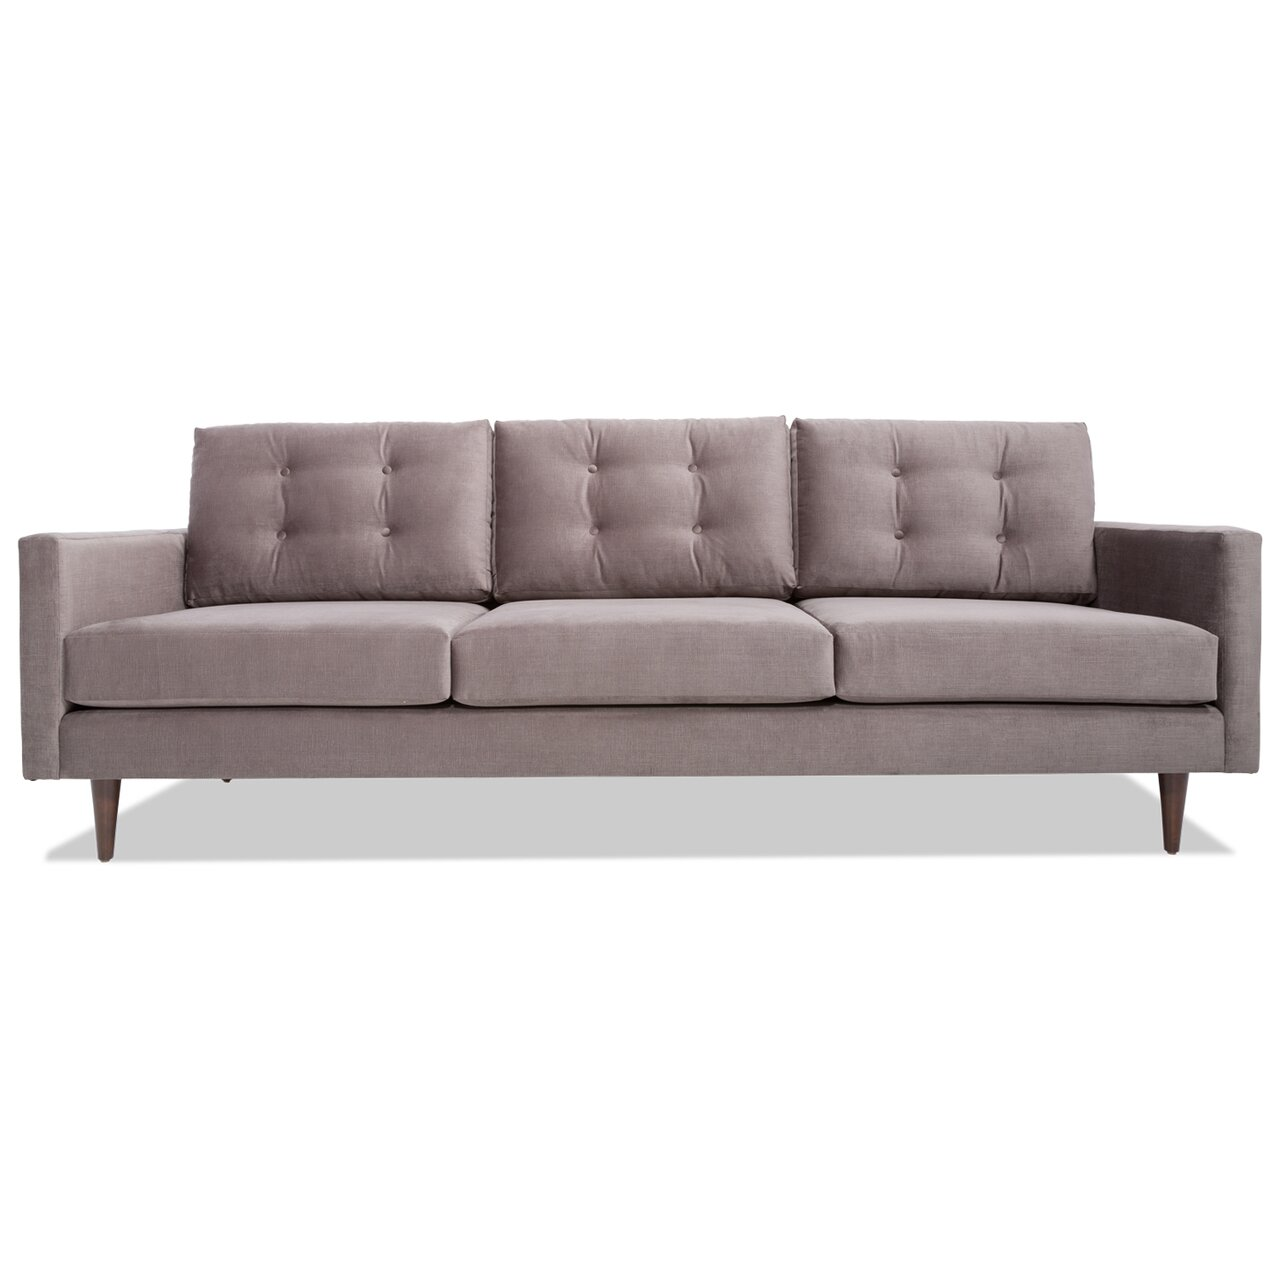 Affordable modern sofa for Inexpensive modern sofa